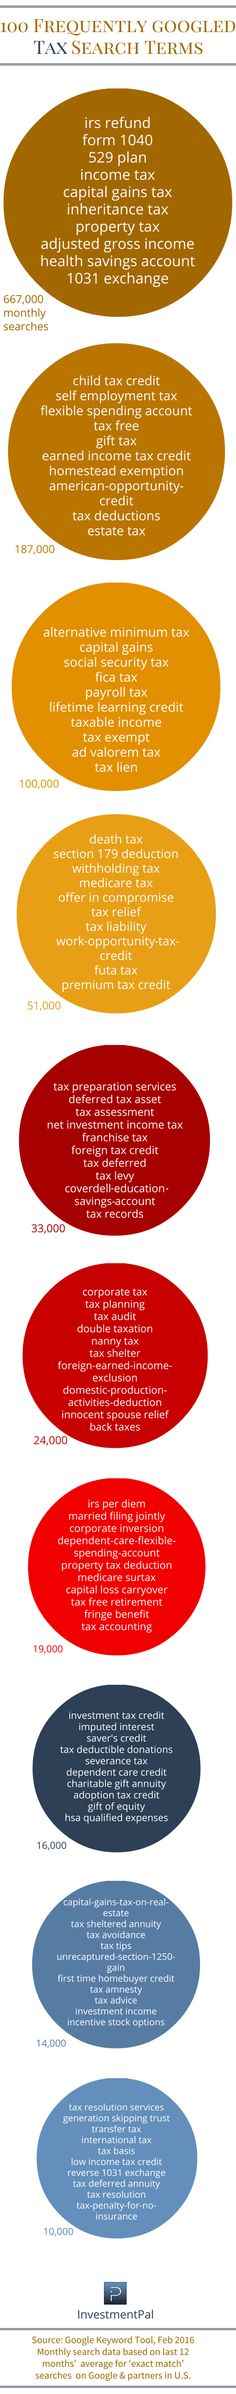 100 frequently Googled tax topics & terms >> http://blog.investmentpal.com/tax-topics-terms-Googled/